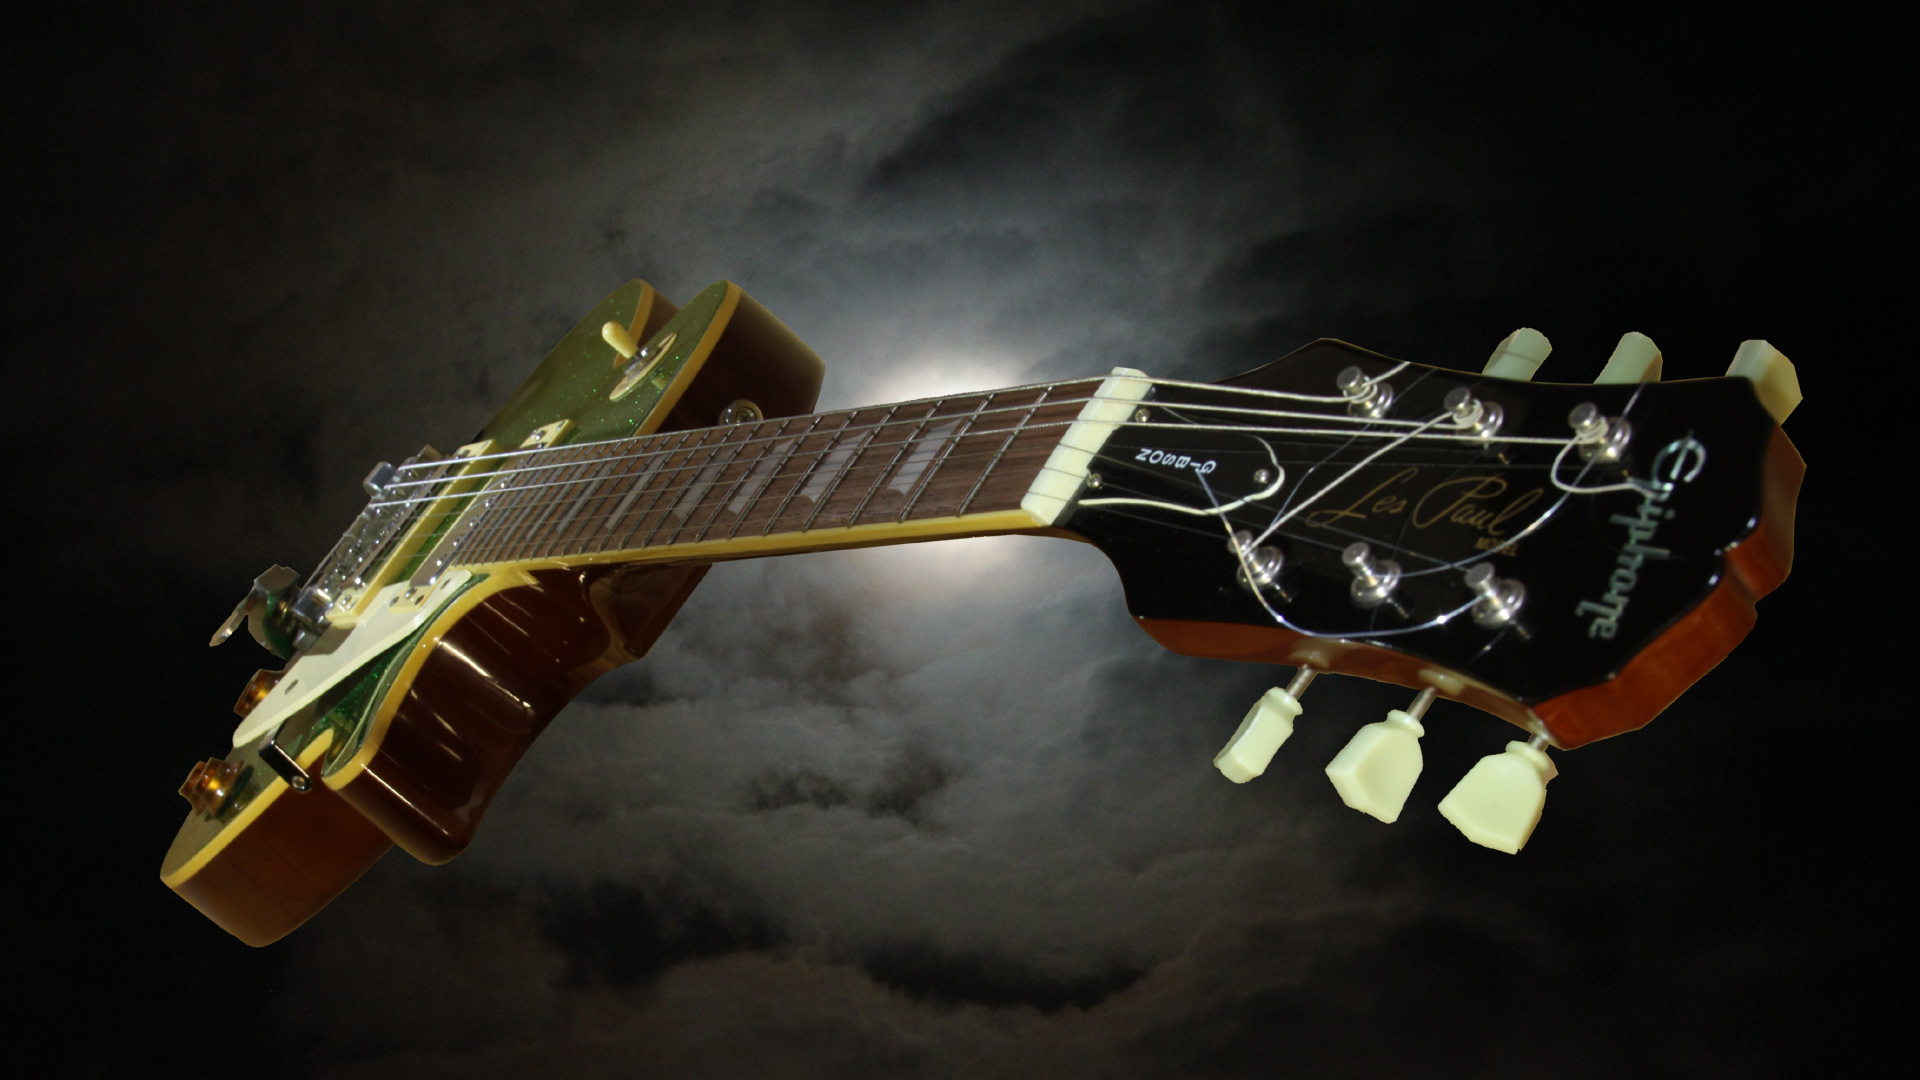 hd wallpapers music gibson les paul wallpaper style backgrounds 1920x1080